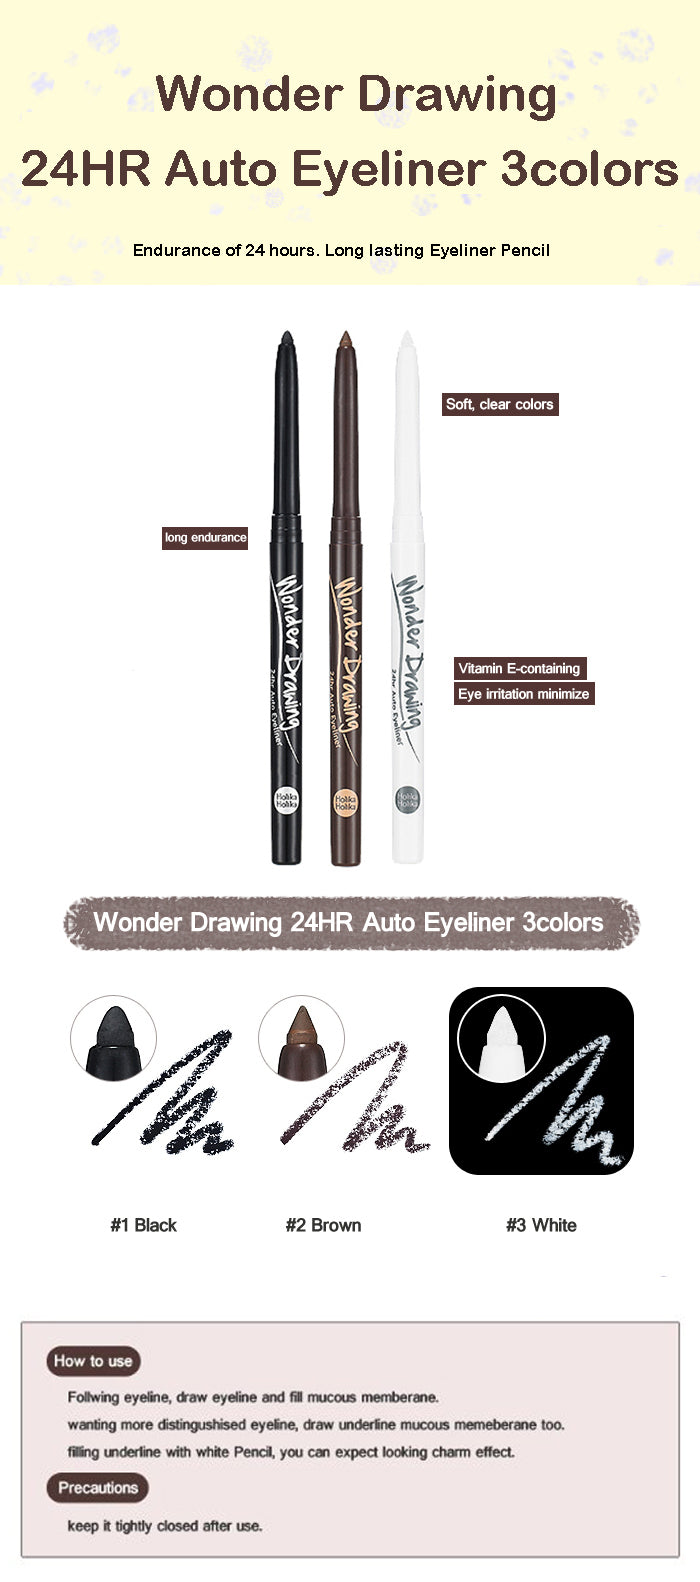 Eyeliner Waterproof | Wonder Drawing 24hr Auto Eyeliner